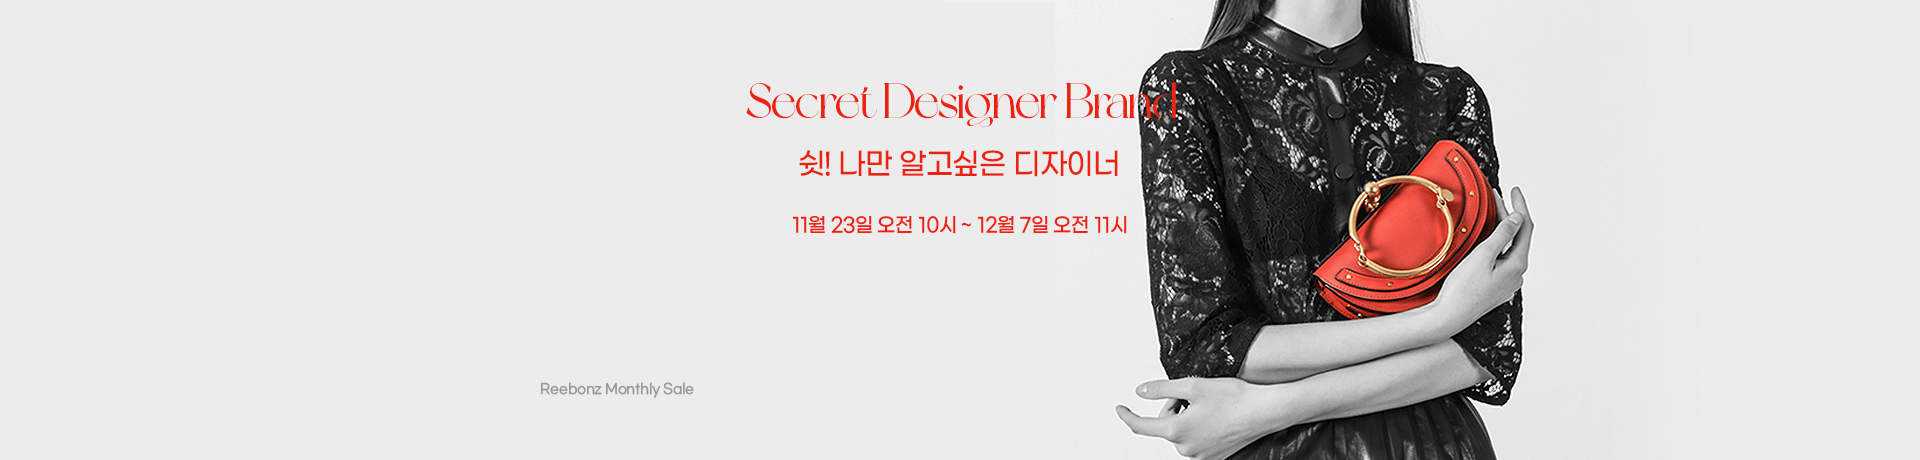 201123_sj_secret_designer_brand_pc-_ececec